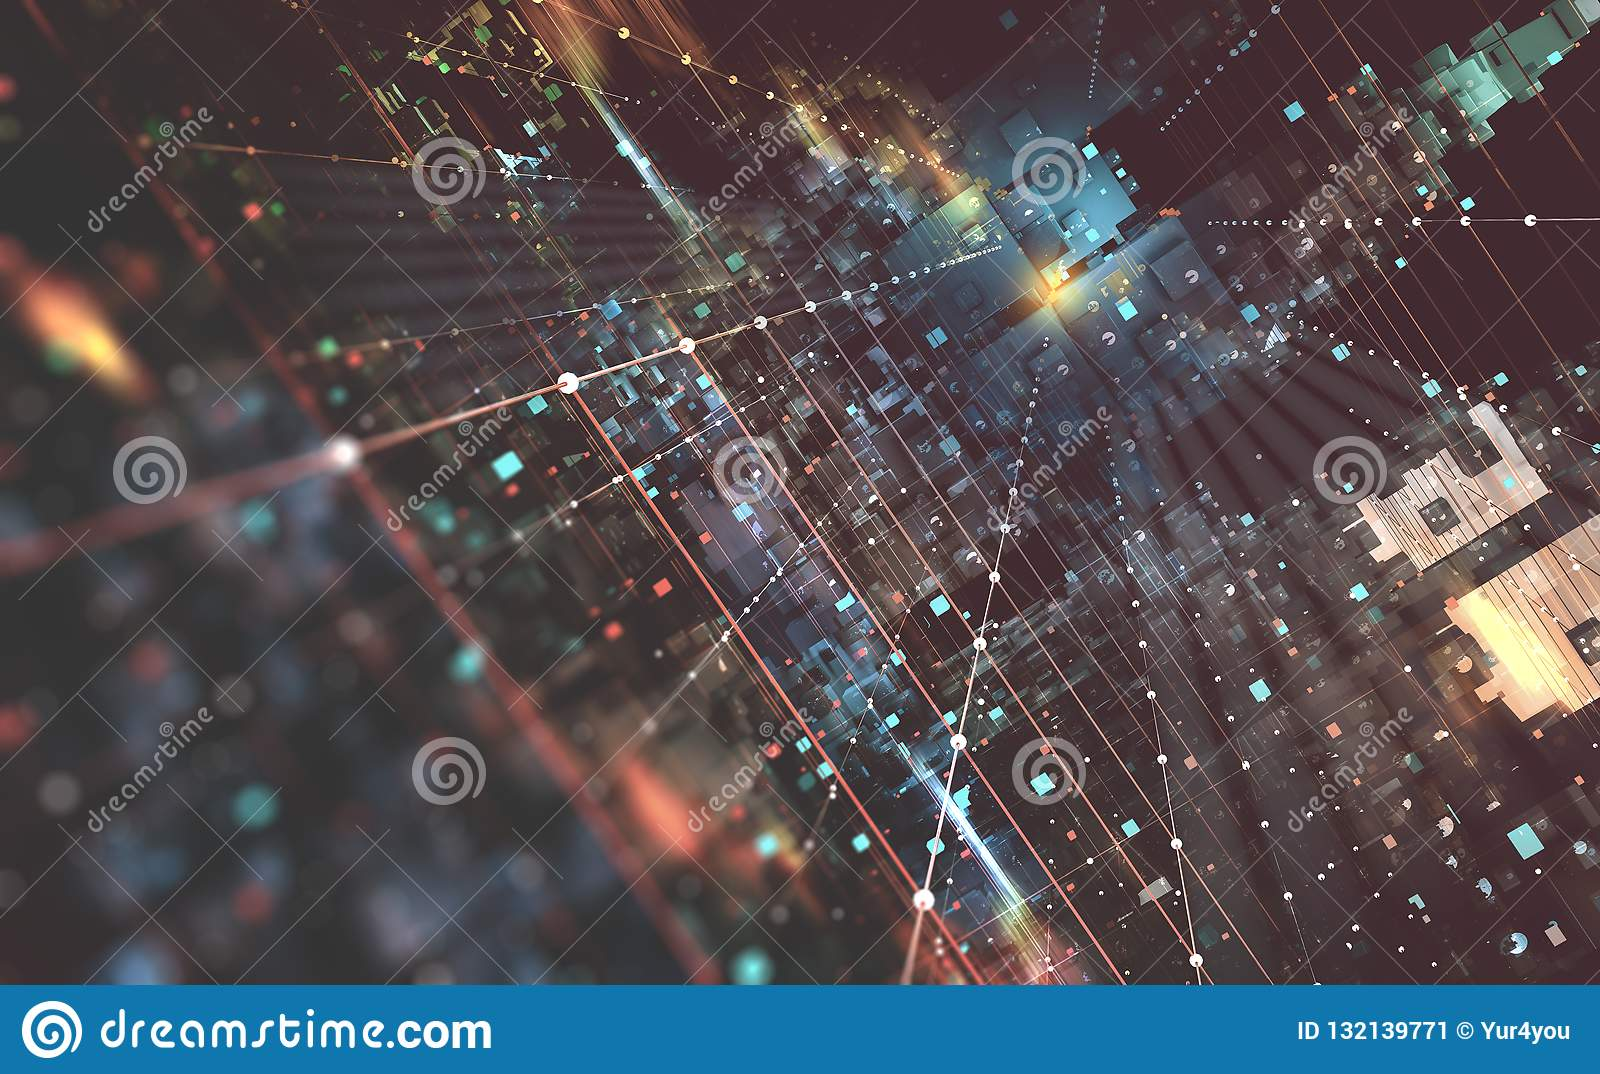 Abstract tech background 3D illustration. Quantum computer architecture. Fantastic night city